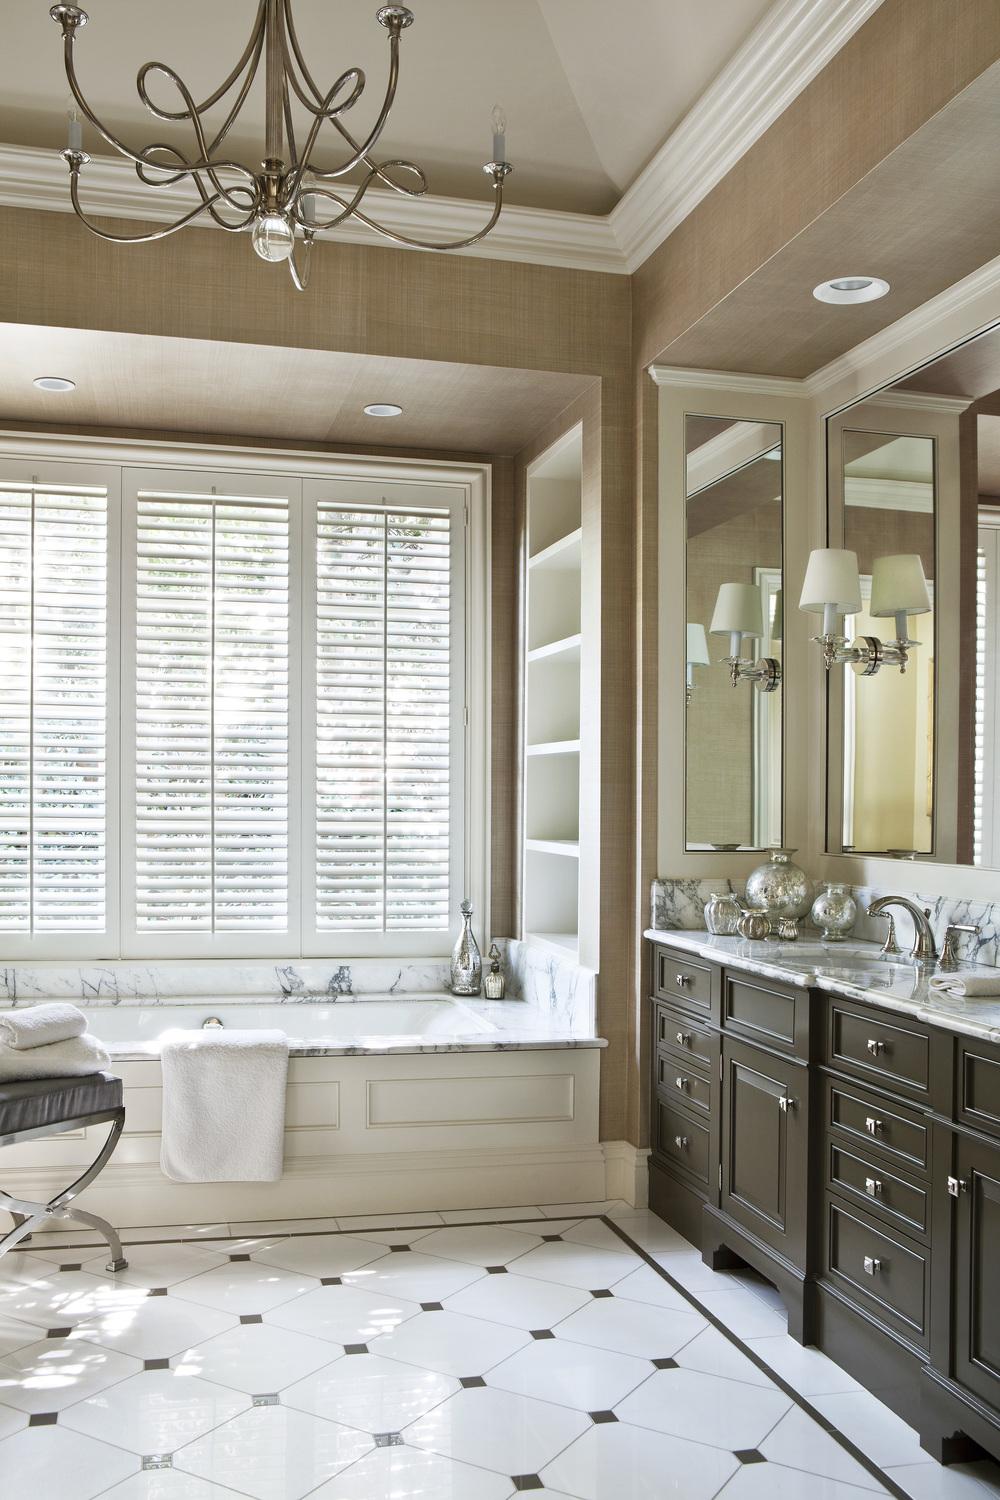 03 Brentwood Park Bluestone Manor House Master Bathroom.jpg